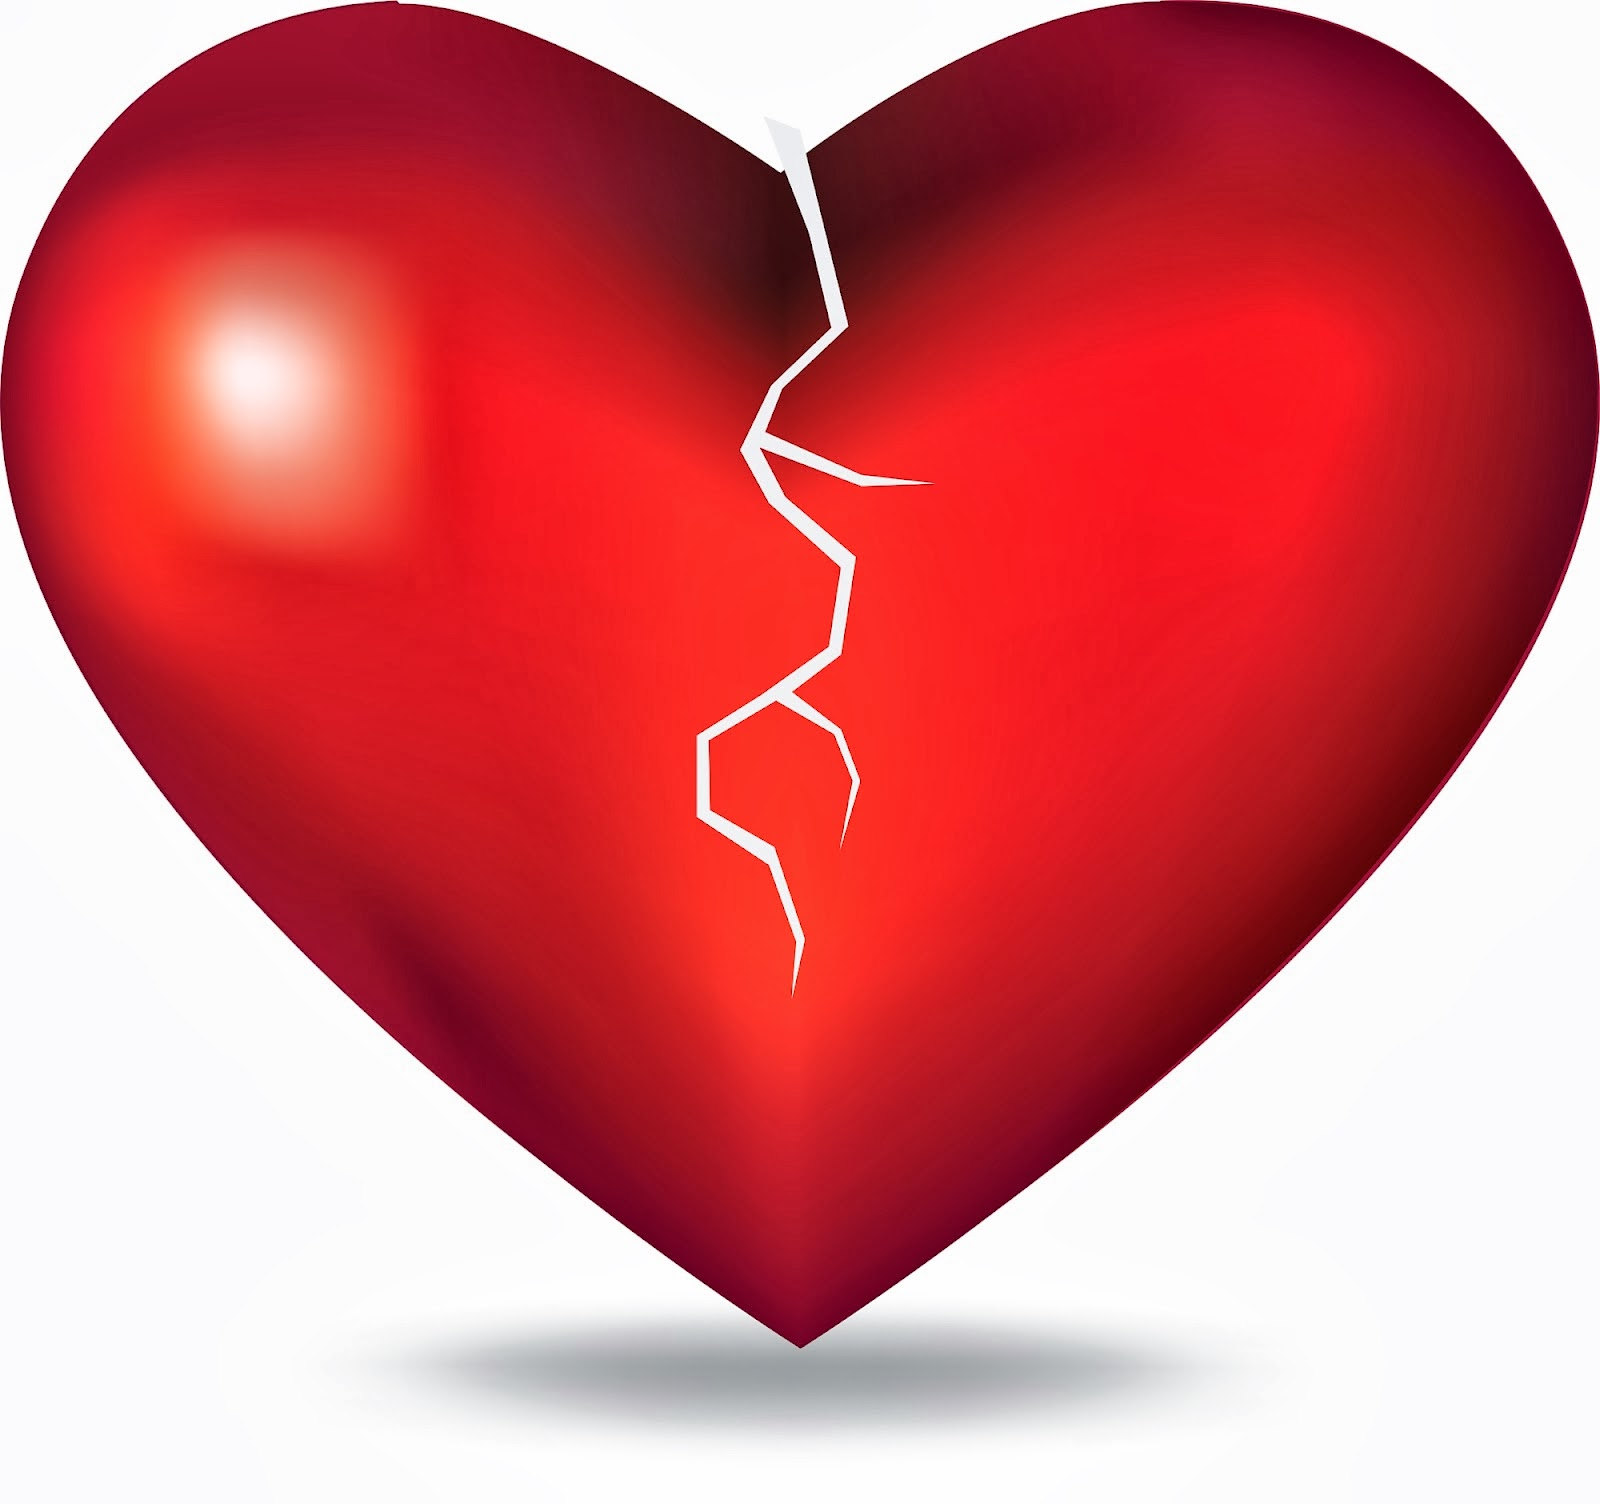 Sad Heart Wallpapers With Quotes Broken Heart Sms Sms Shayari Of Broken Heart New